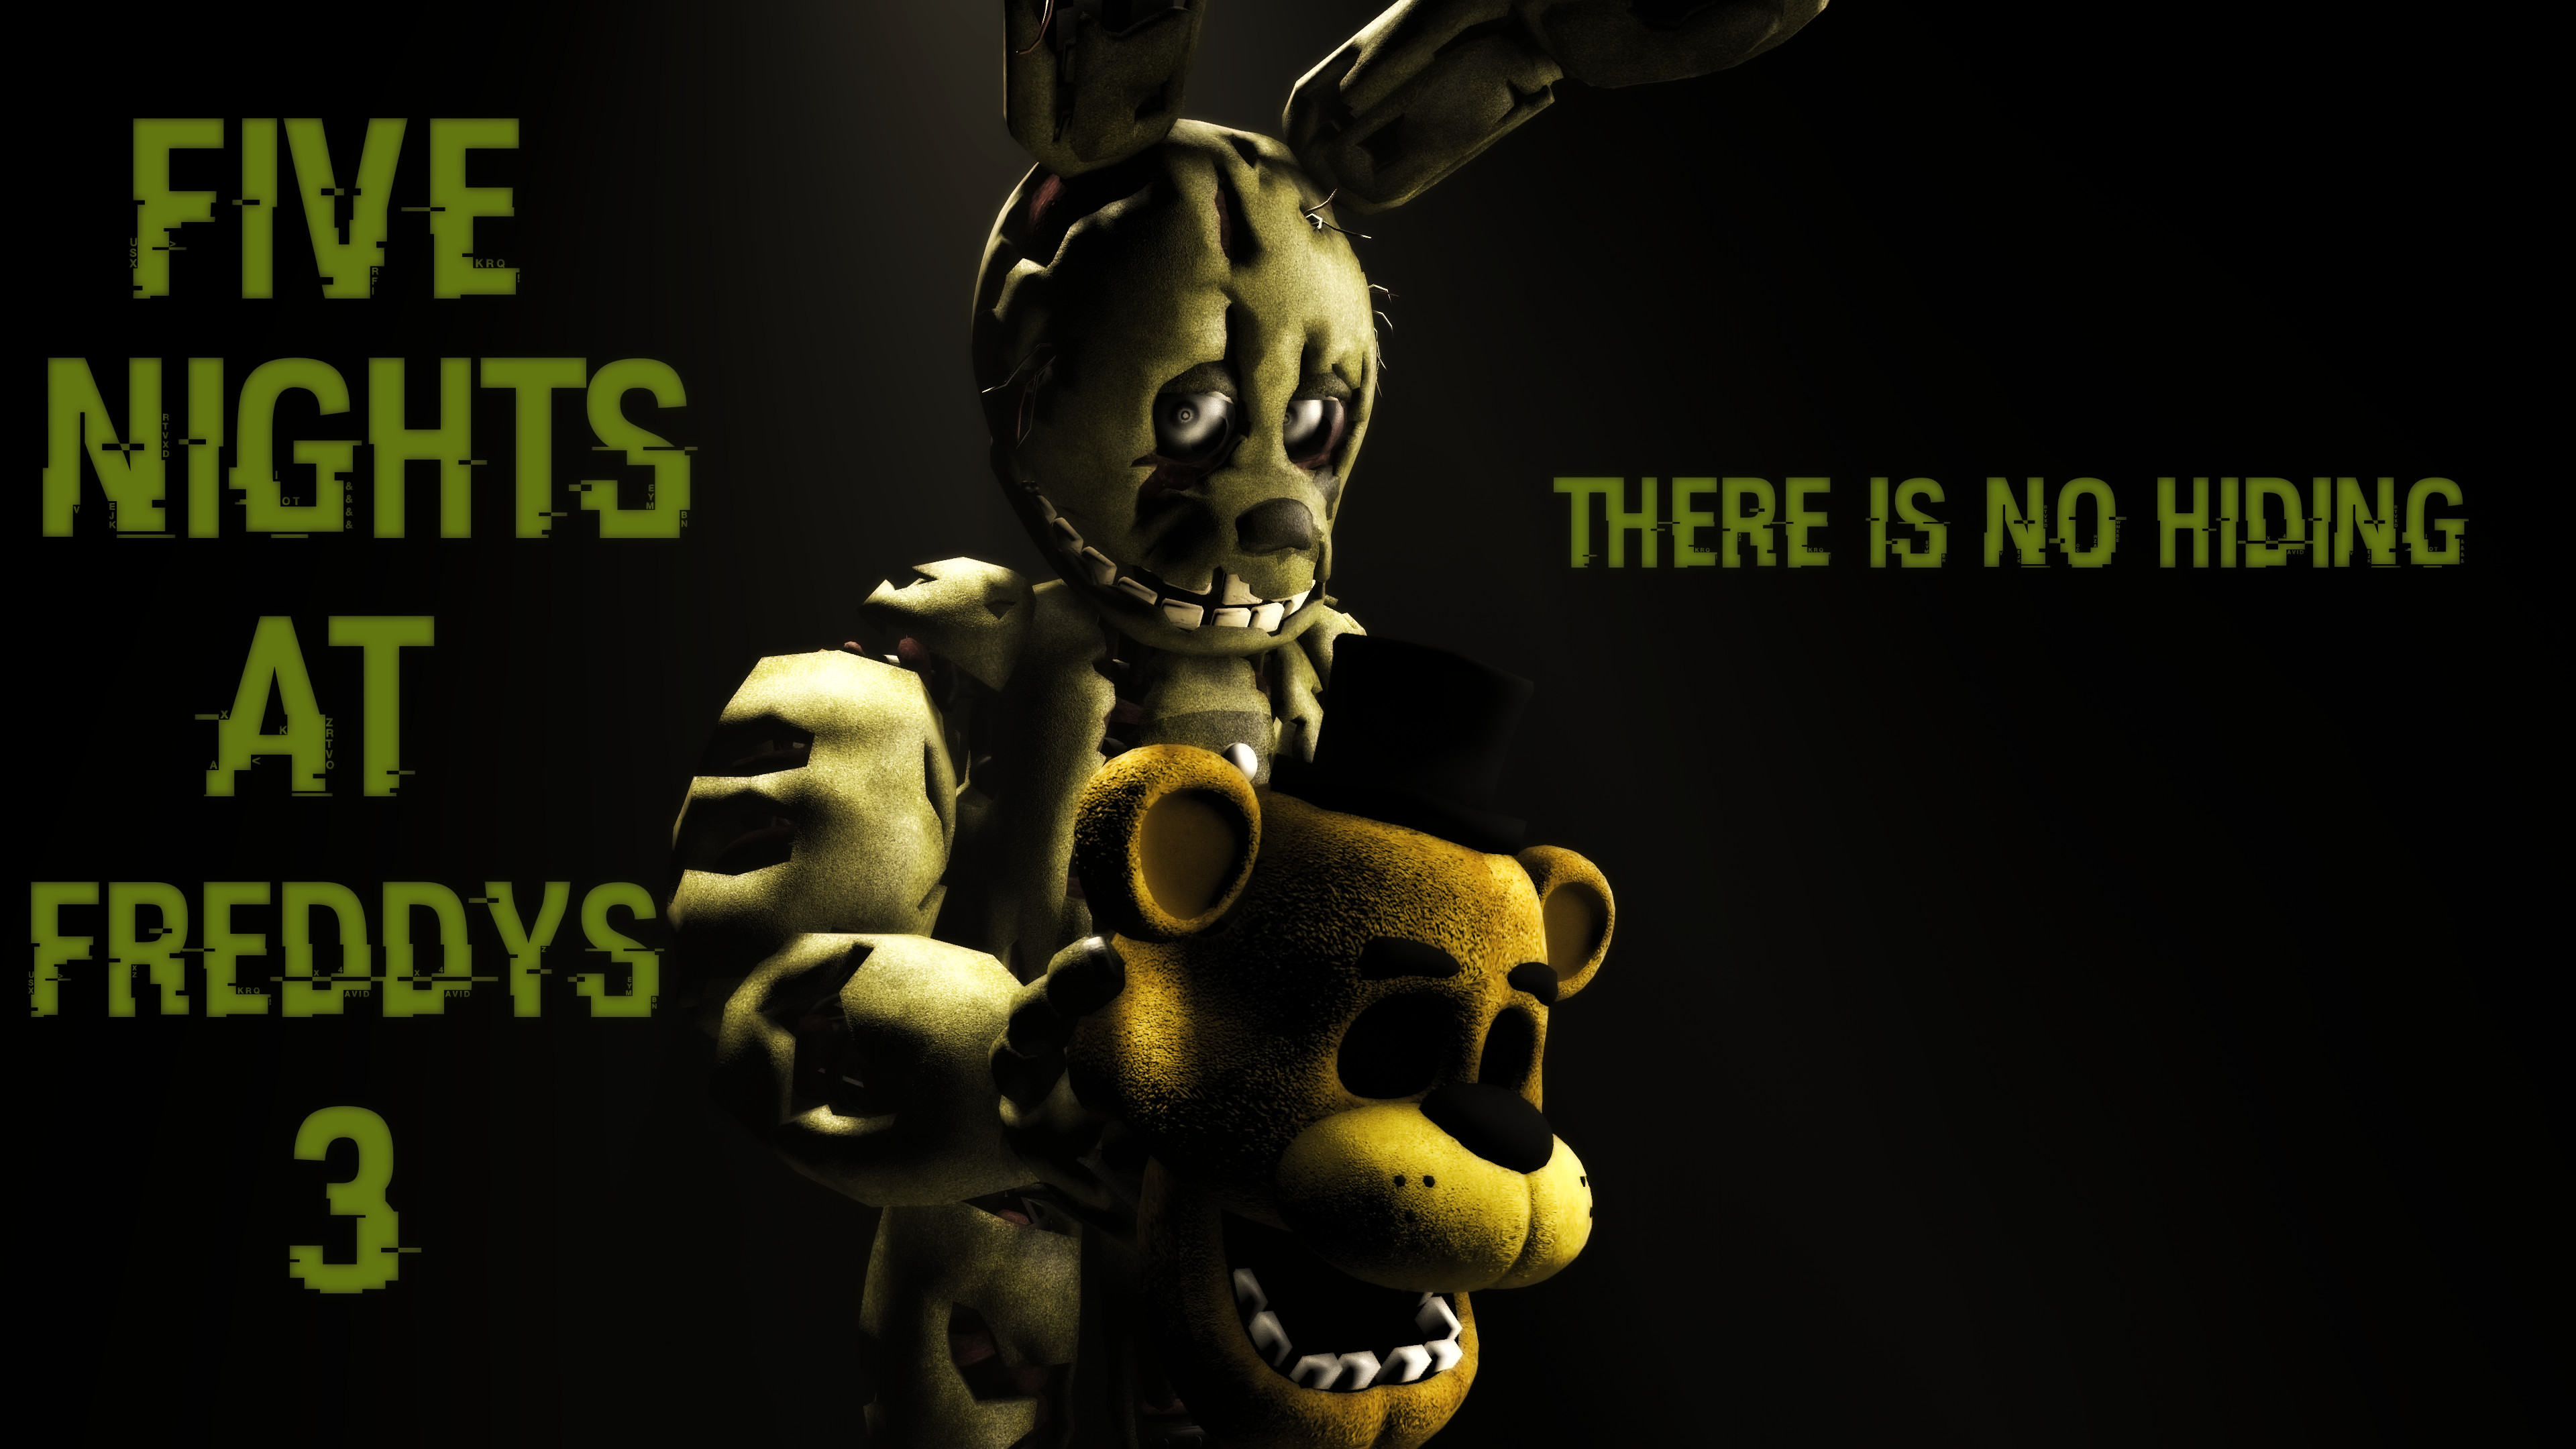 3840x2160 ... Five Nights At Freddy's 3 Wallpaper by boatfullogoats